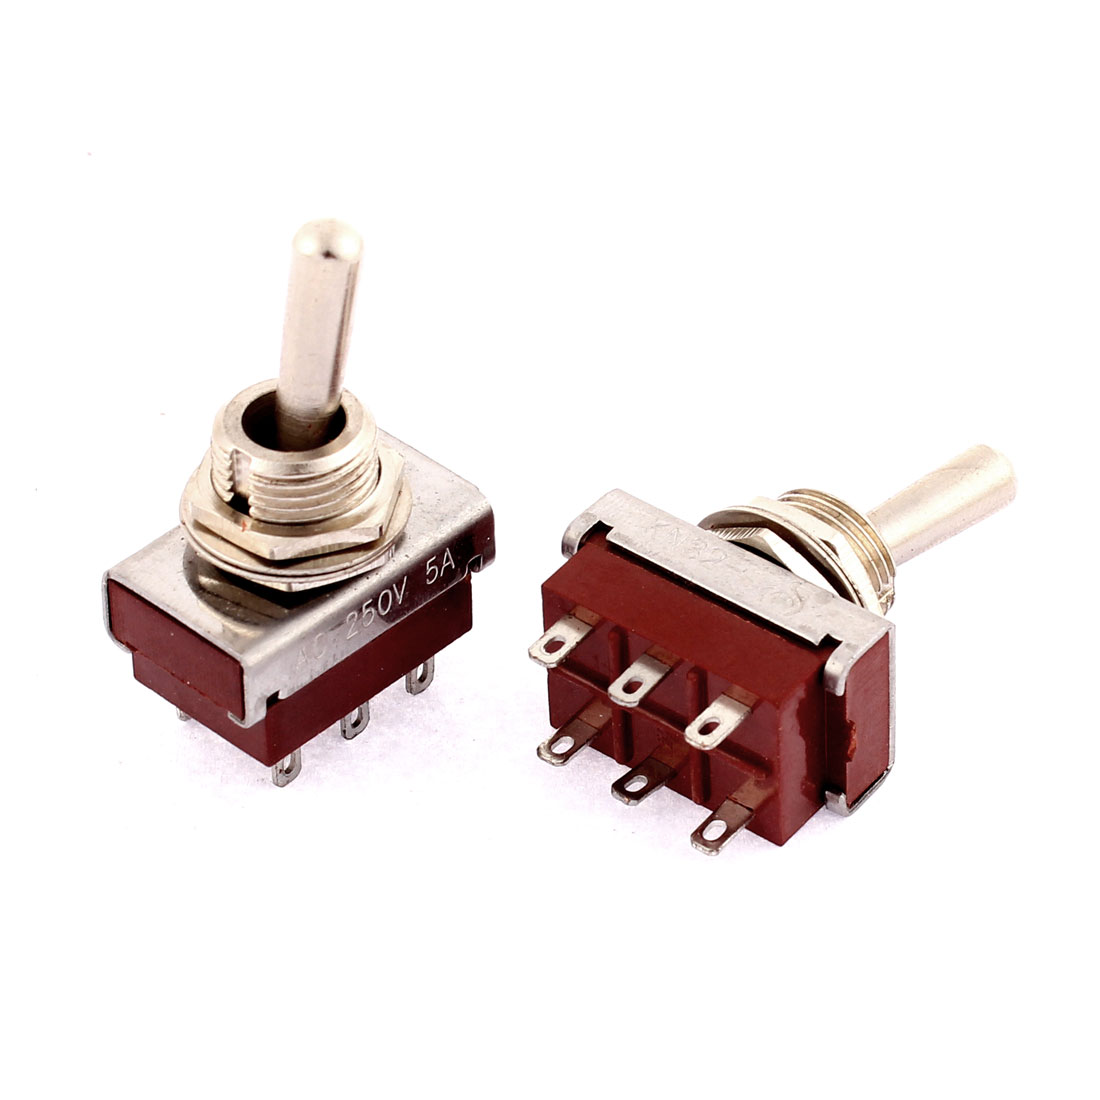 2Pcs AC 250V 5A 6 Terminals 2 Position 12mm Thread Panel Mounted DPDT Rocker Toggle Switch